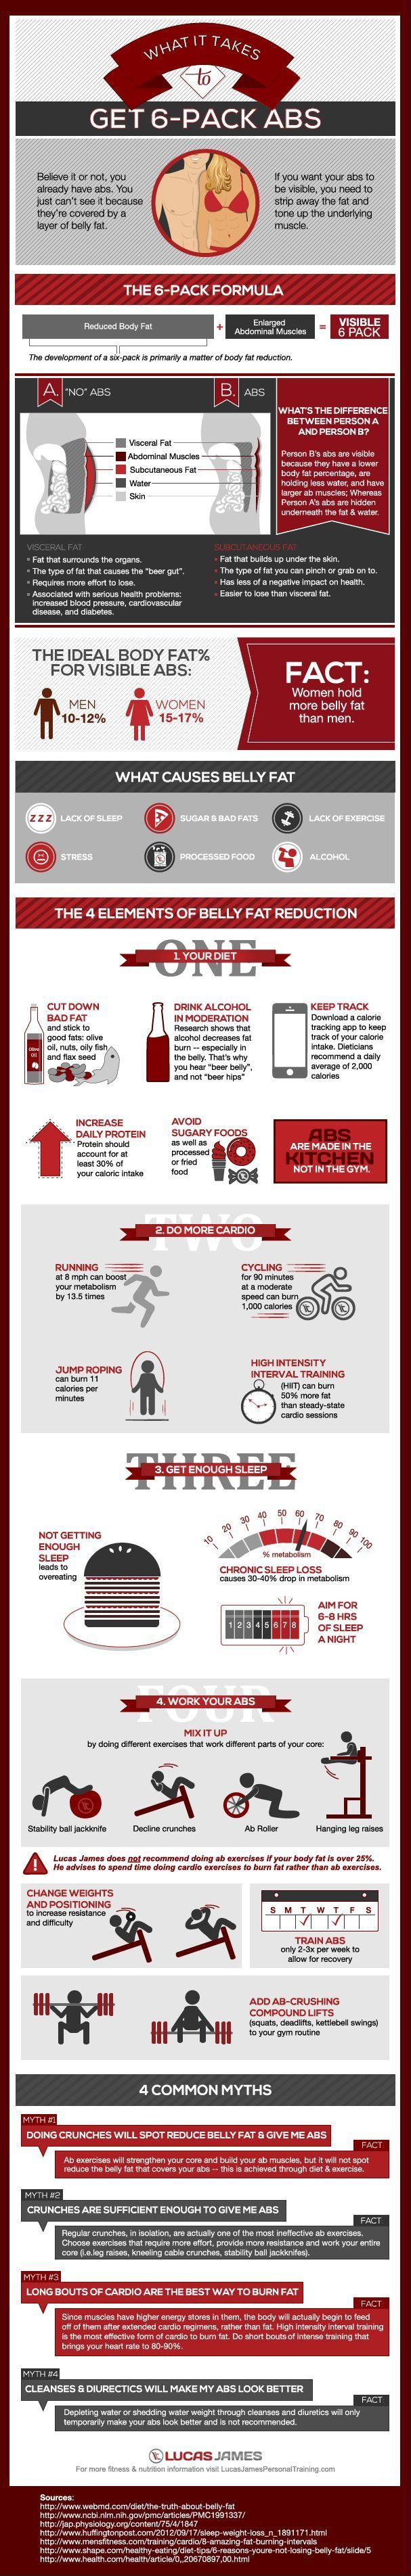 See more here ► https://www.youtube.com/watch?v=ITkJDrQsNKg Tags: ways to lose weight fast without exercise, quick way to lose weight without exercise, lose weight without diet and exercise - Even though this is about getting abs, it's a great infographic helping your overall health approach!